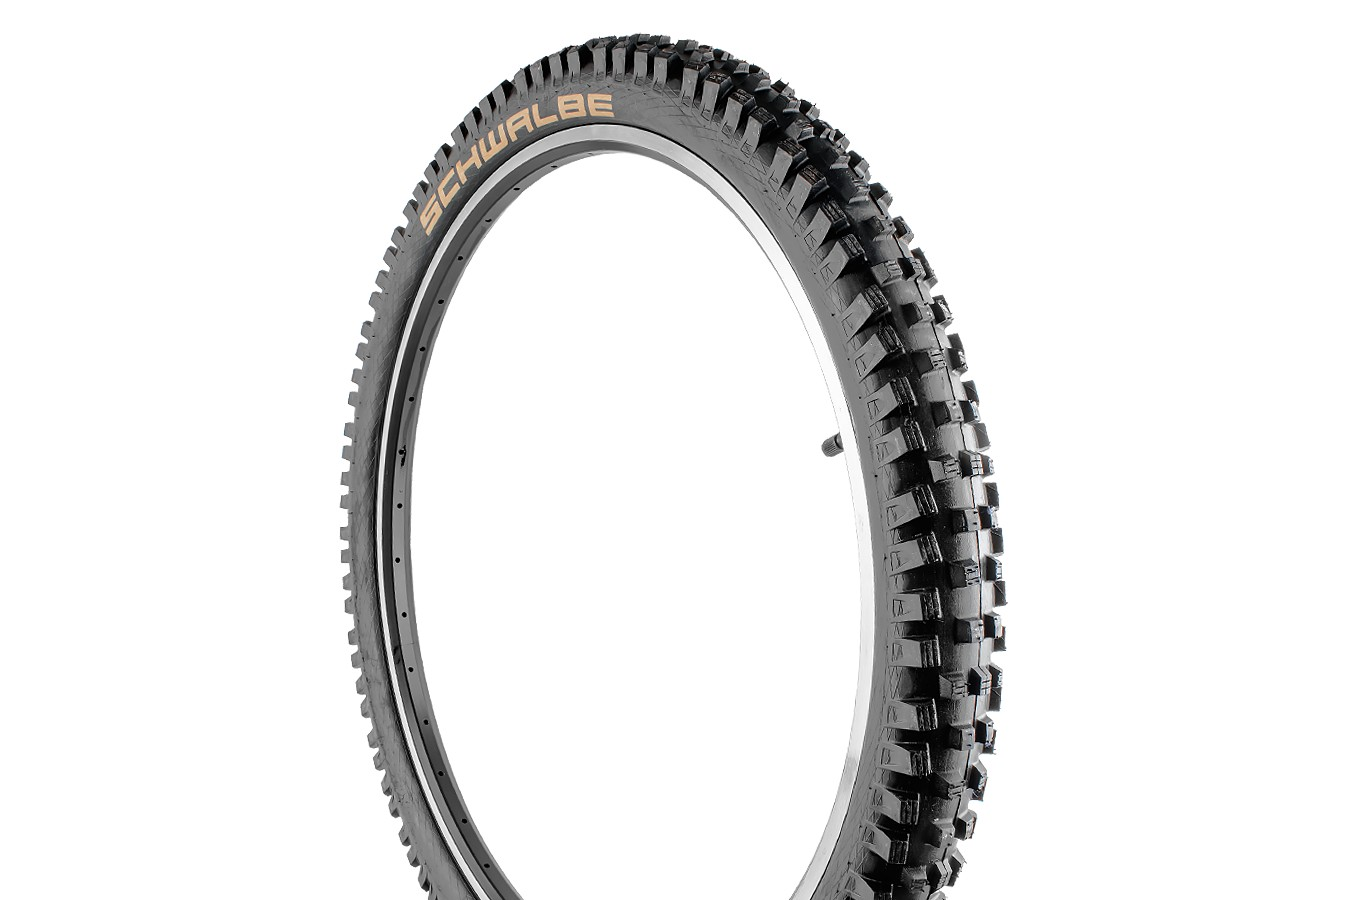 Pneu 26x2.35 (60-559) Magic Mary Bike Park -Schwalbe